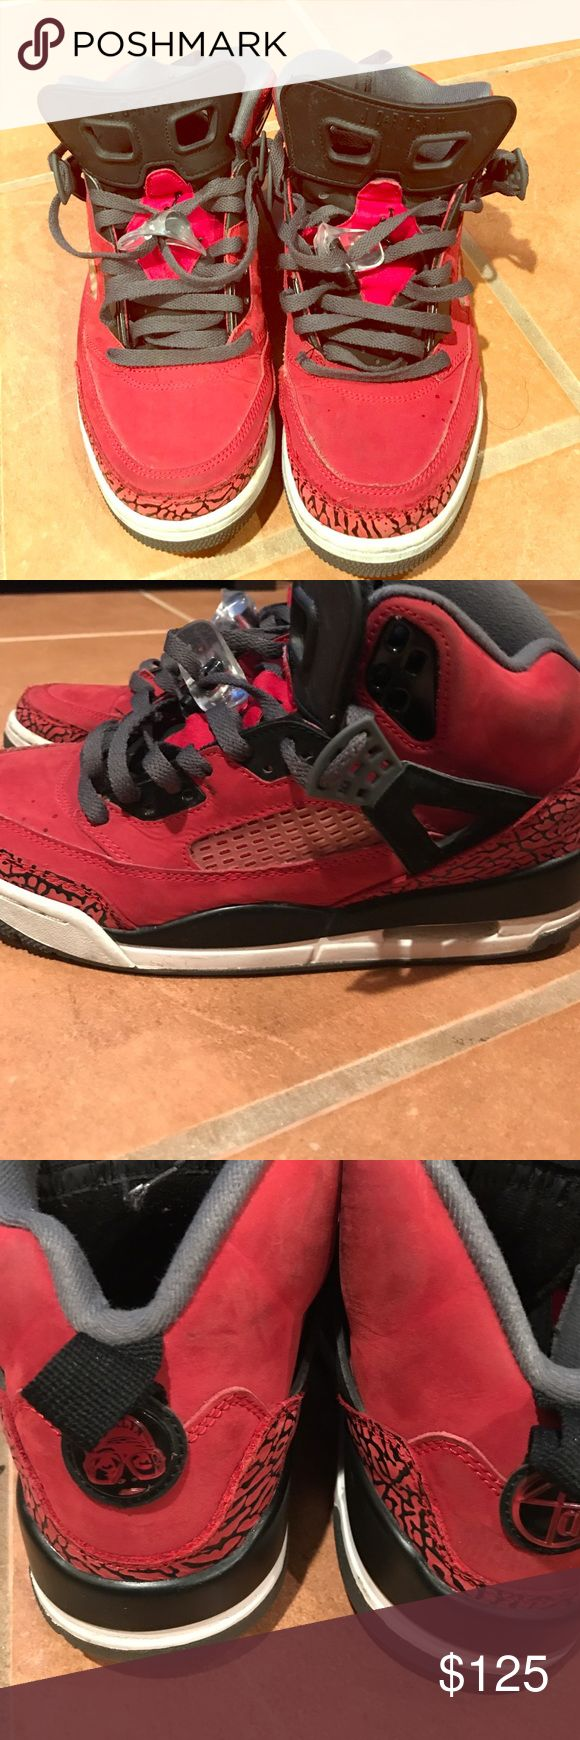 Jordan Spizike 'Bred' My babies. The day-to-day reds. Ok condition. Price definitely negotiable. Trade or paid. 6/10 Jordan Shoes Sneakers